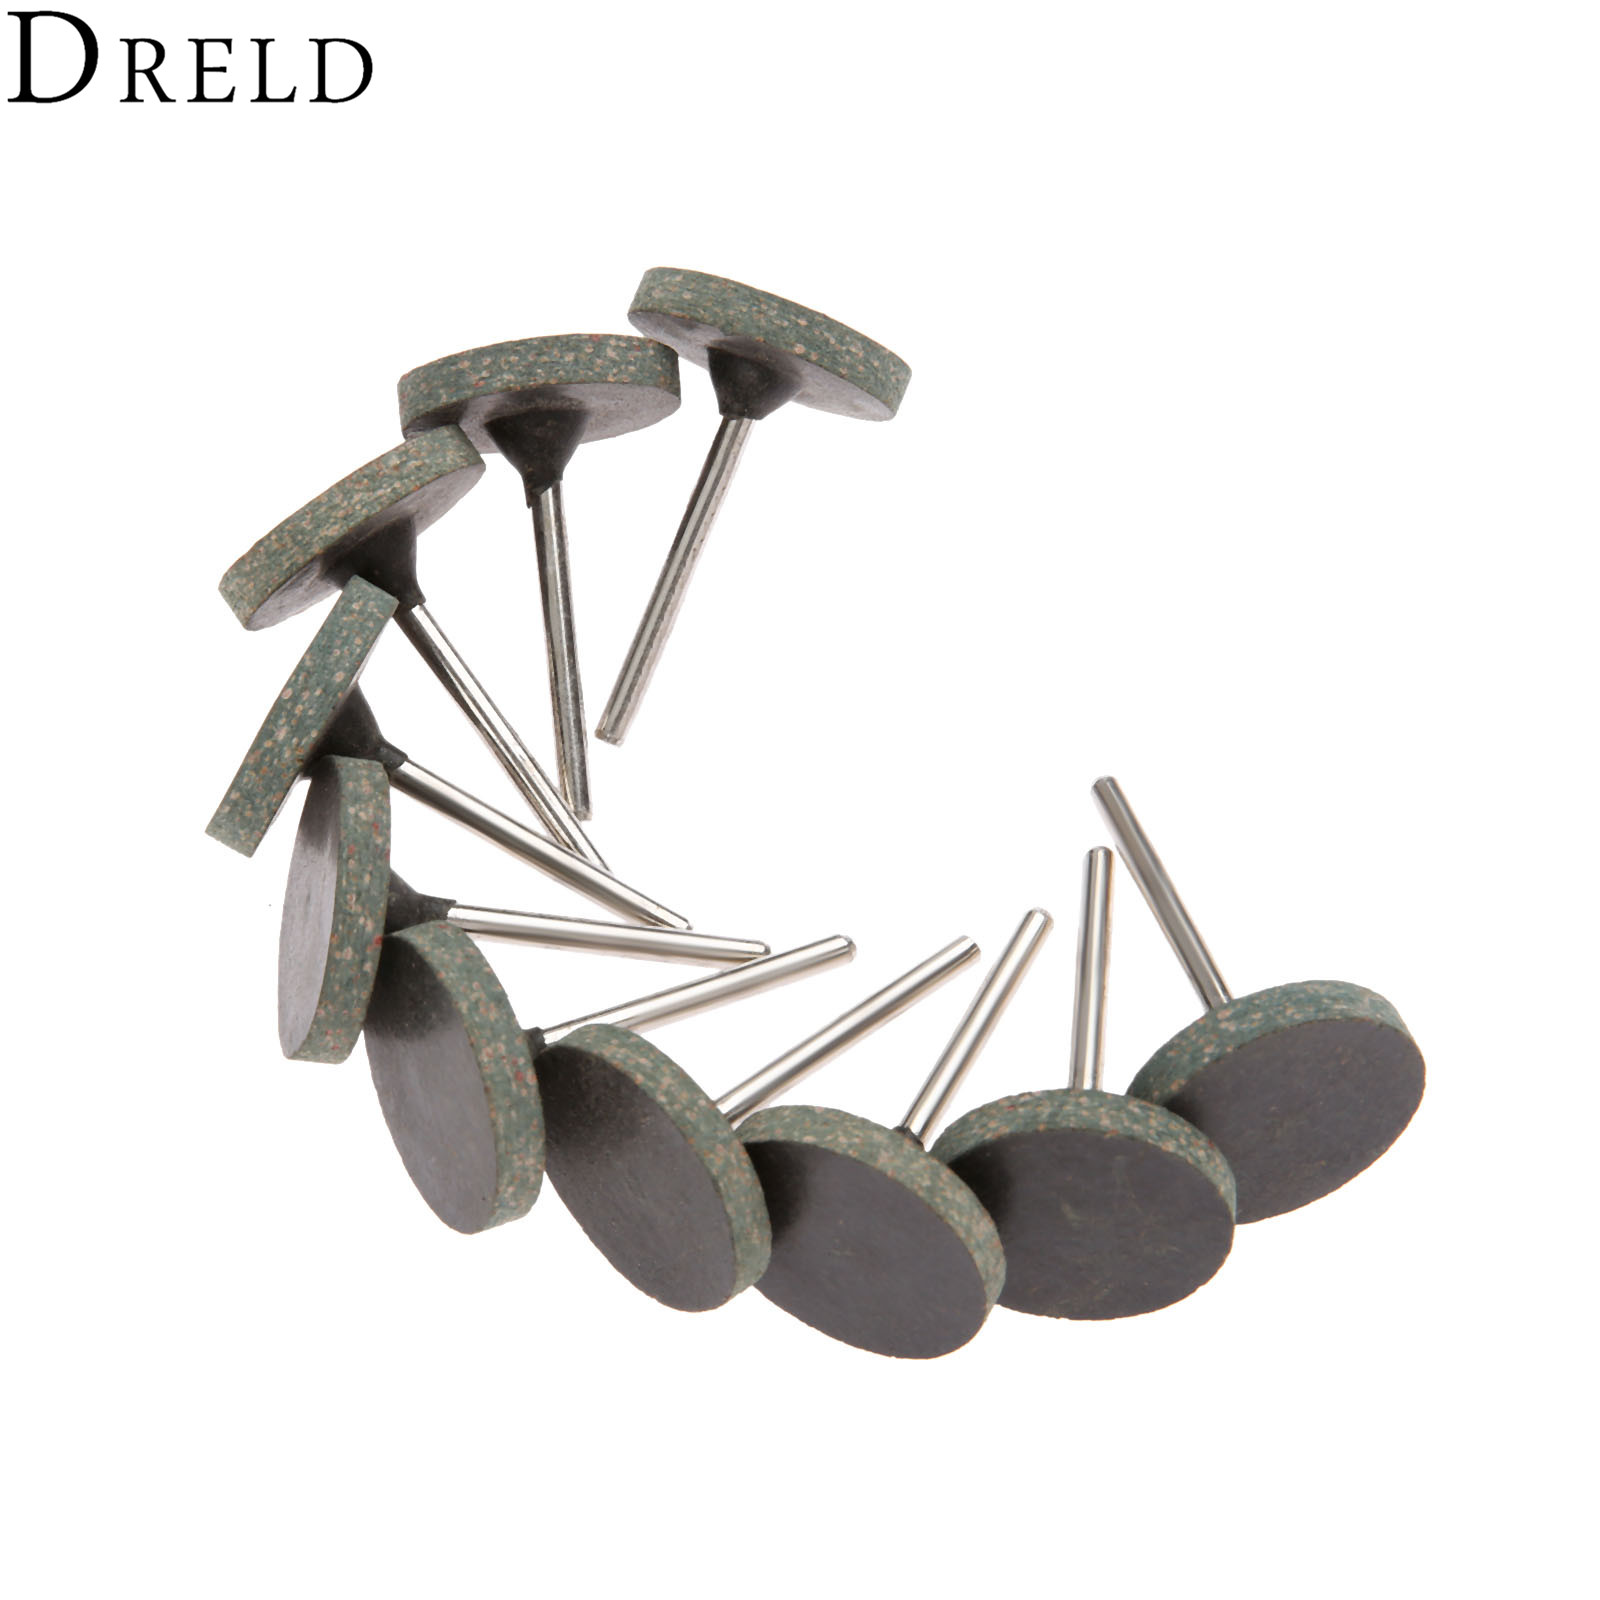 DRELD 10Pcs Dremel Accessories 25mm Rubber Grinding Head Buffing Polishing Grinding Wheel For Metal Wood Rotary Tool 3mm Shank